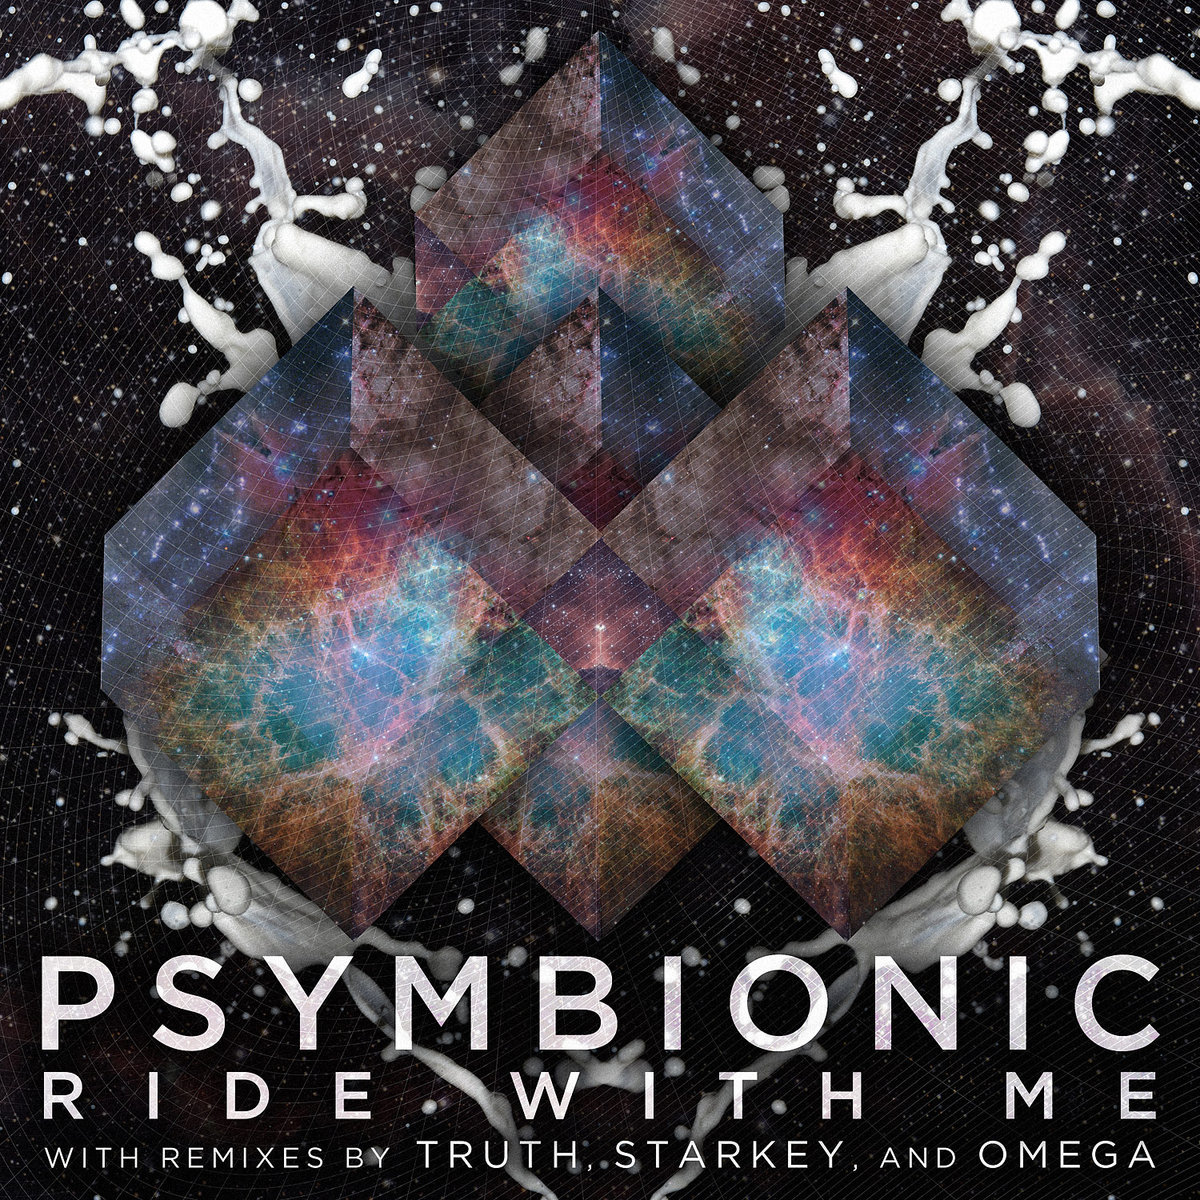 Psymbionic - Ride With Me (Starkey Remix) @ 'Ride With Me' album (electronic, dubstep)